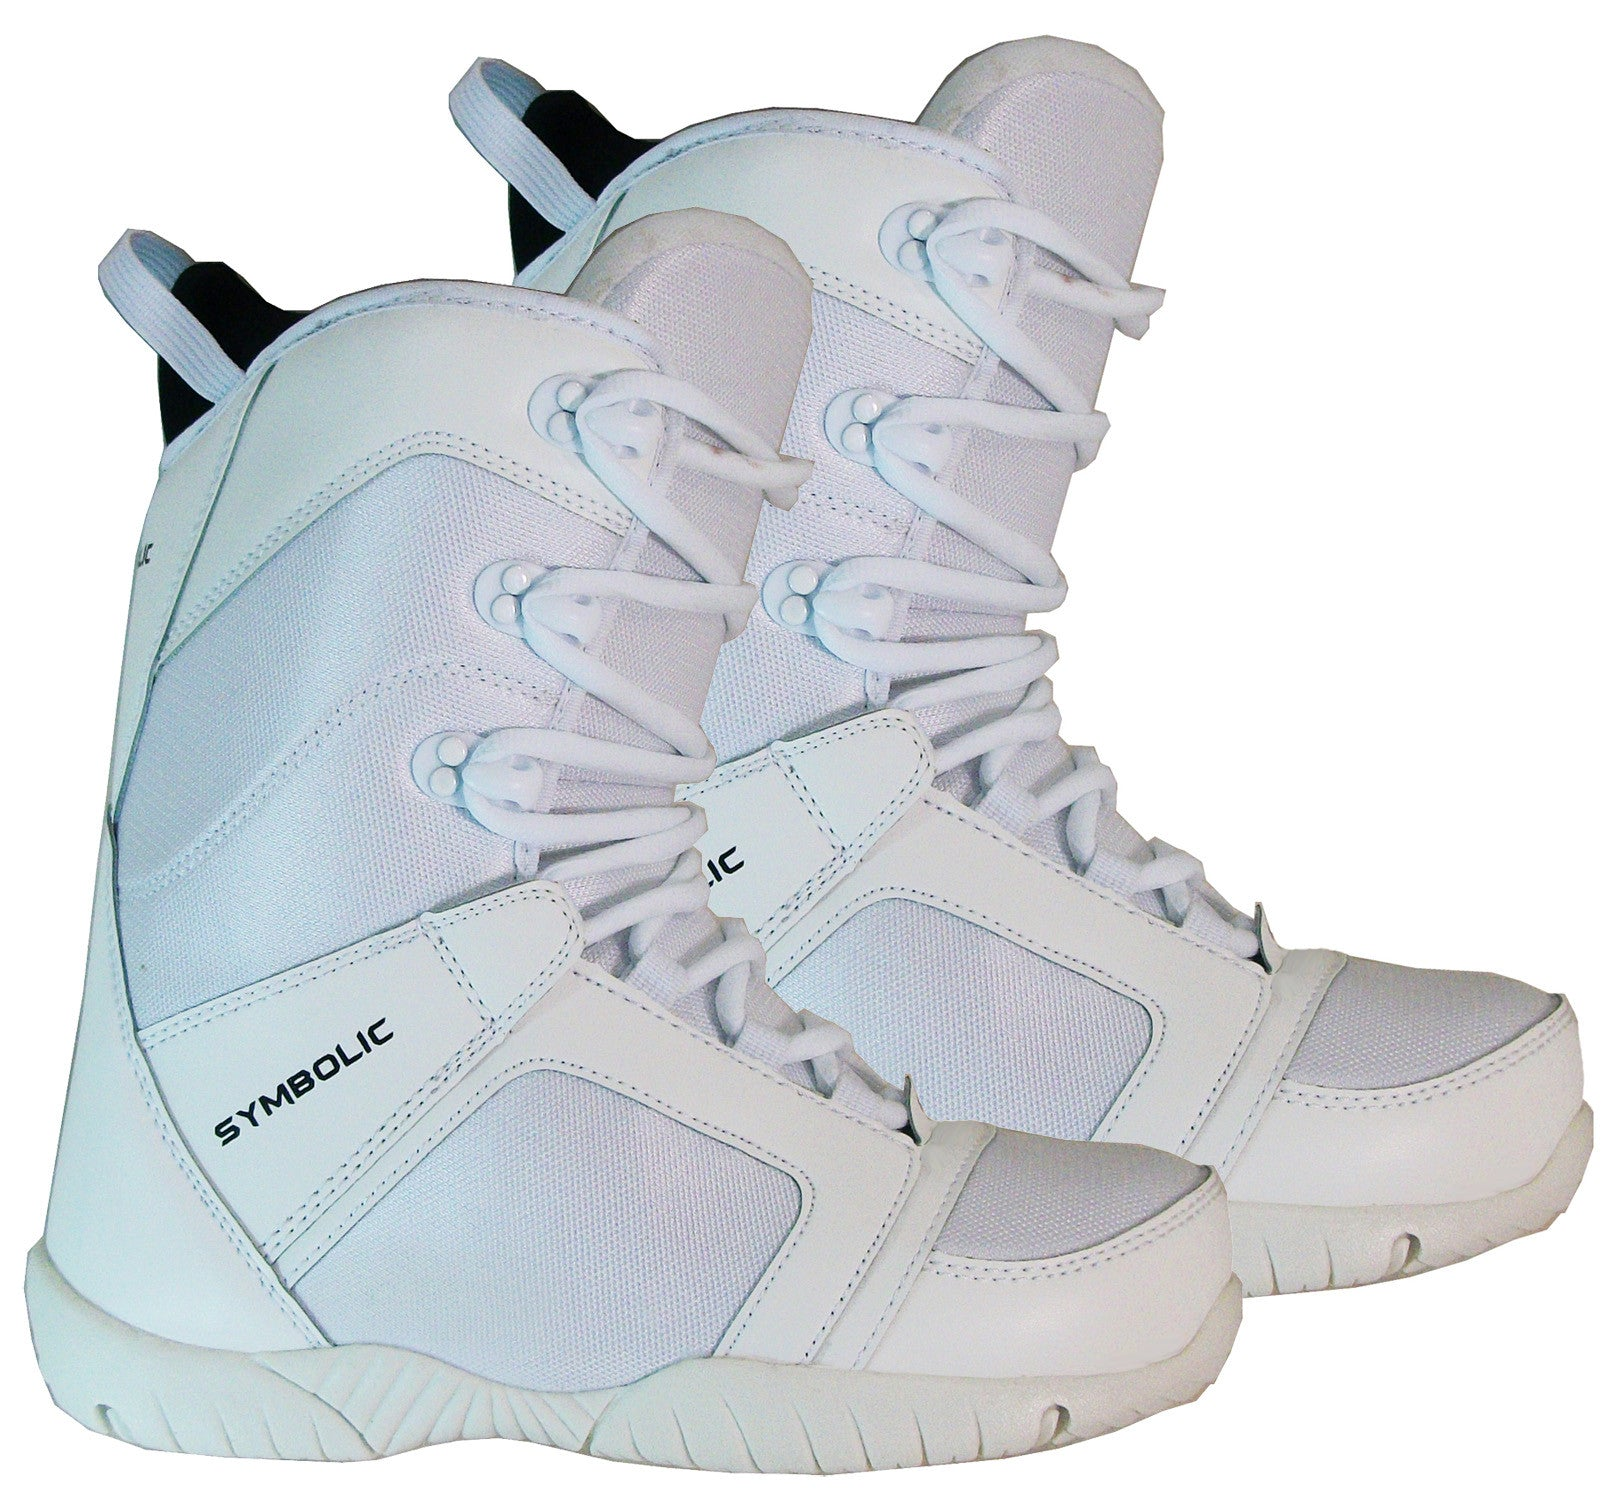 Symbolic White-Ultra Light Mens Snowboard Boots Size 5 6 7 8 9